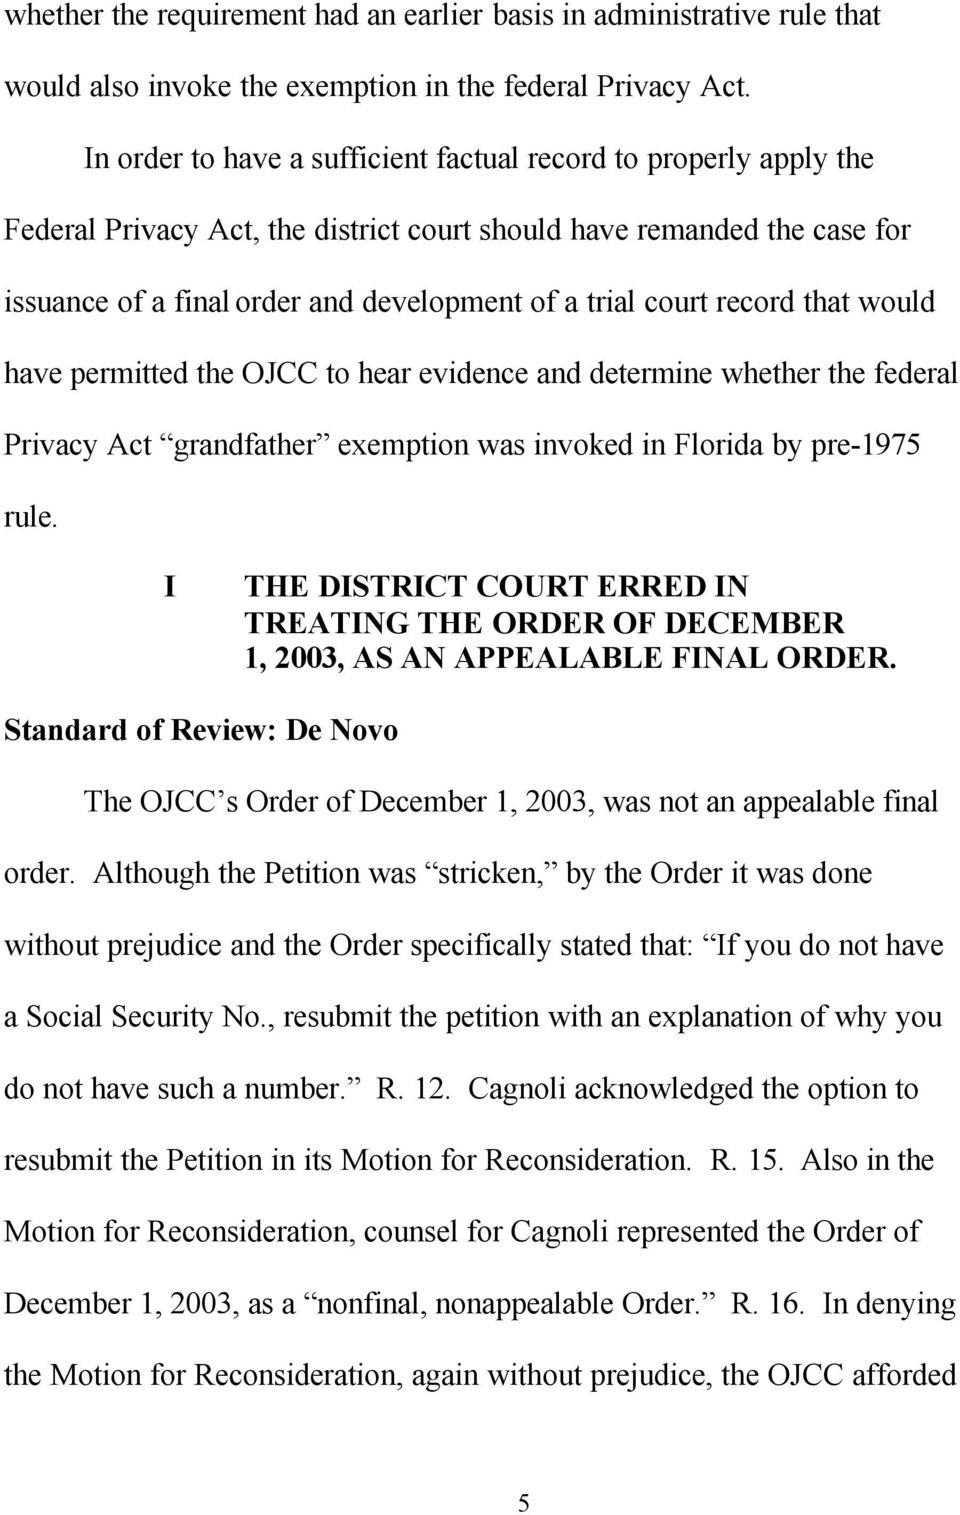 record that would have permitted the OJCC to hear evidence and determine whether the federal Privacy Act grandfather exemption was invoked in Florida by pre-1975 rule.